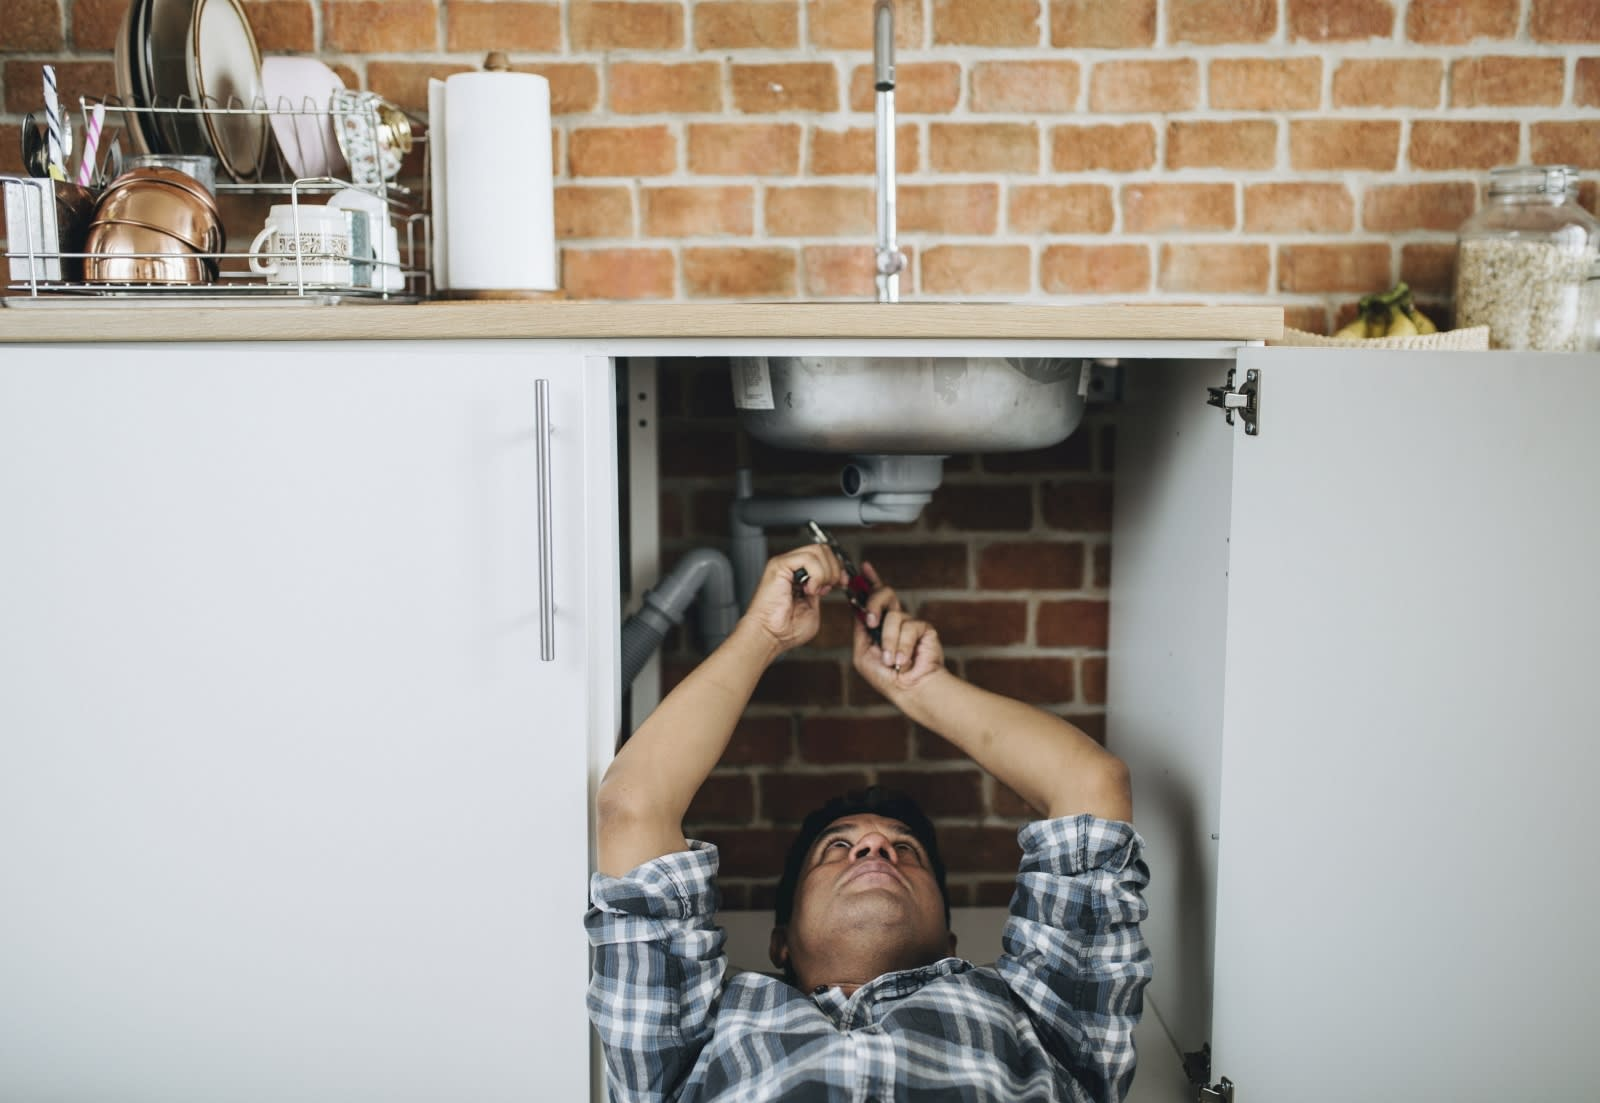 5 Causes of Blocked Drains